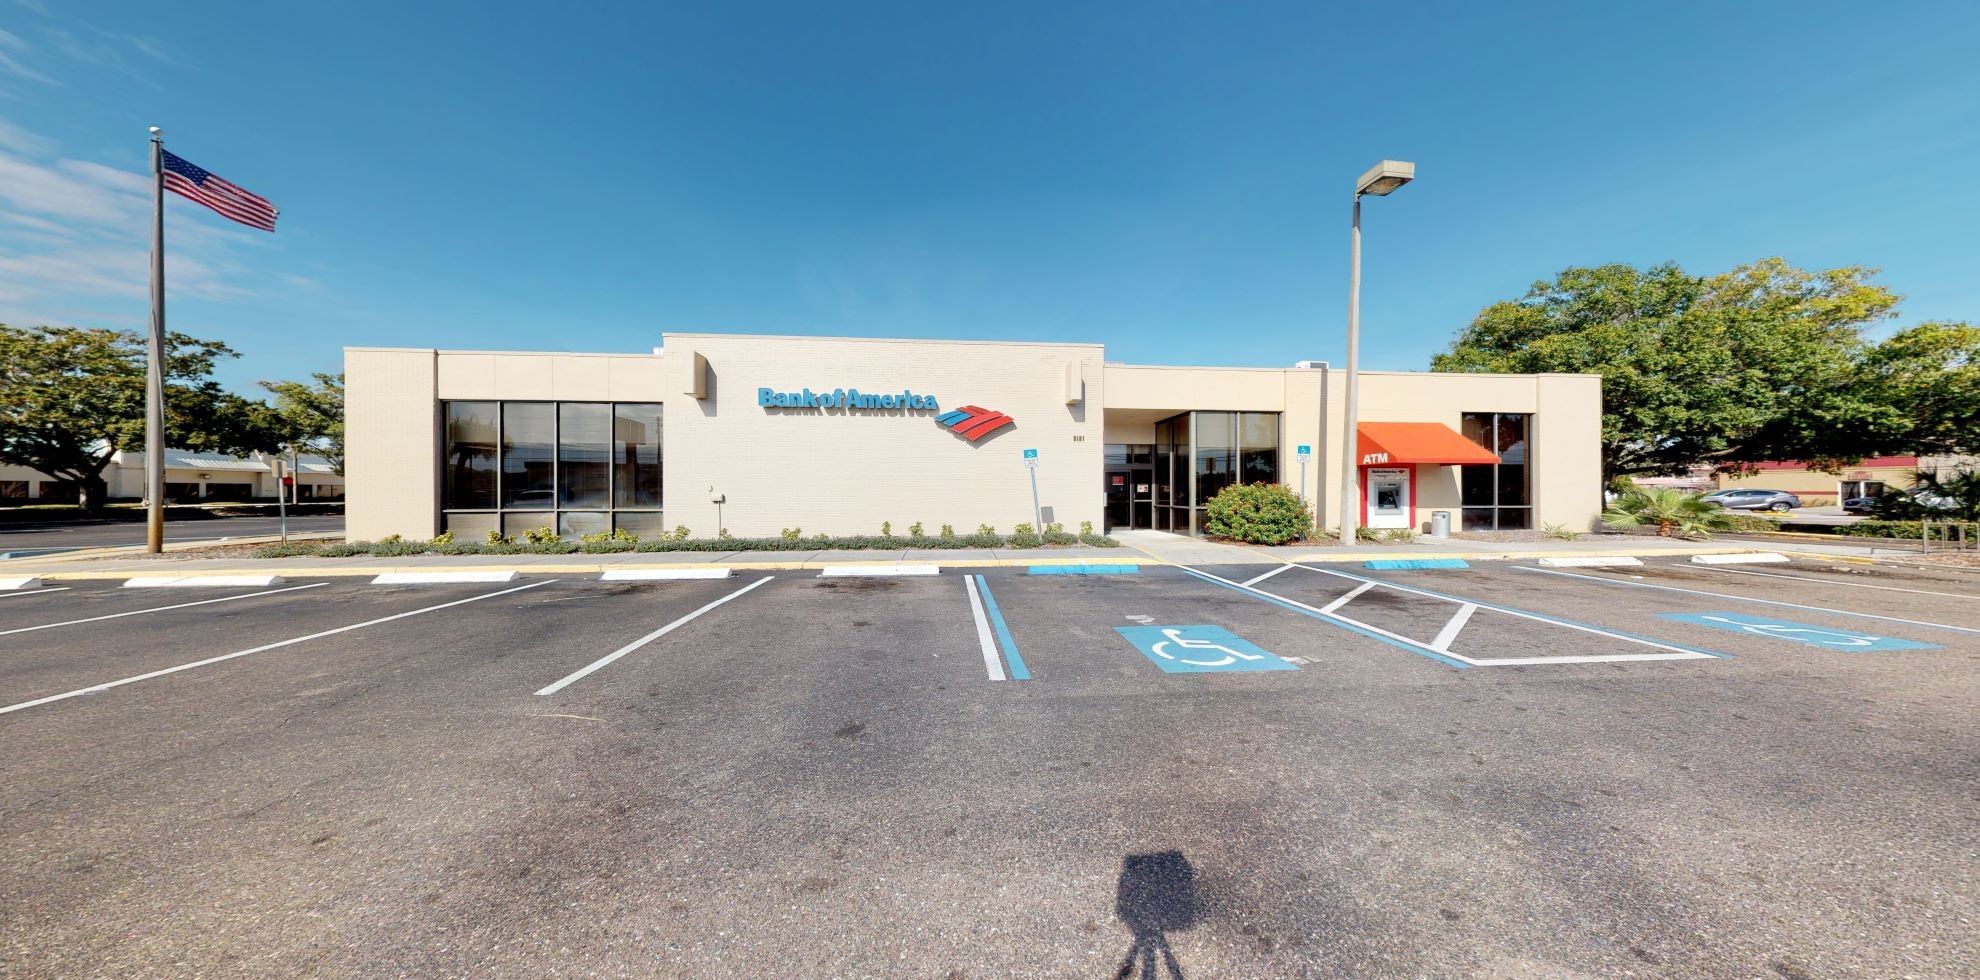 Bank of America financial center with drive-thru ATM | 8181 54th Ave N, Saint Petersburg, FL 33709